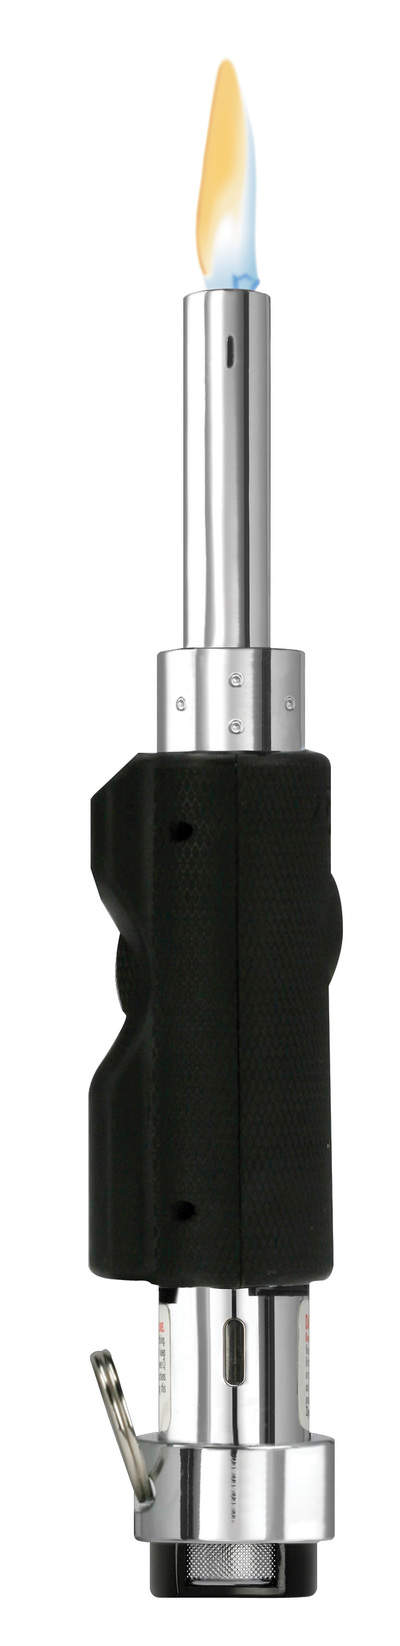 The Zippo Outdoor Utility Lighter (OUL)